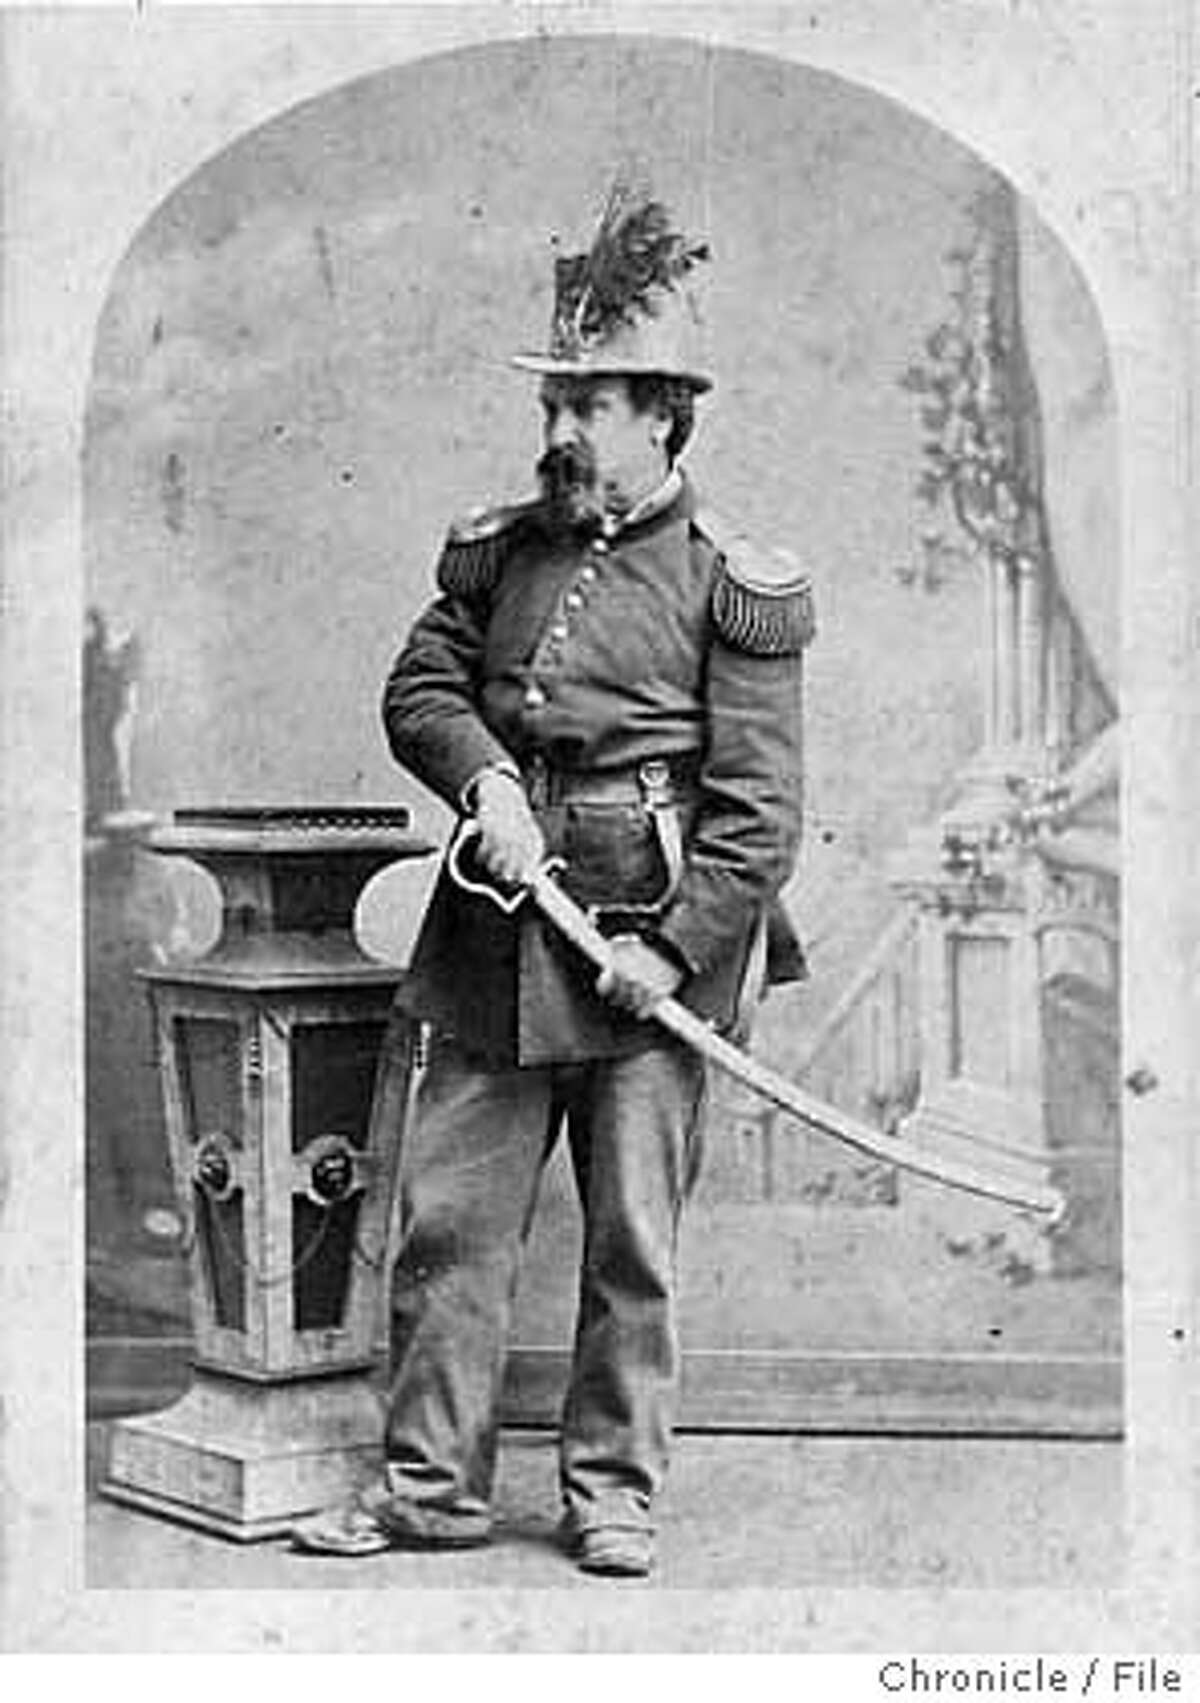 Emperor Norton, San Francisco gadfly and civic visionary. Chronicle file photo